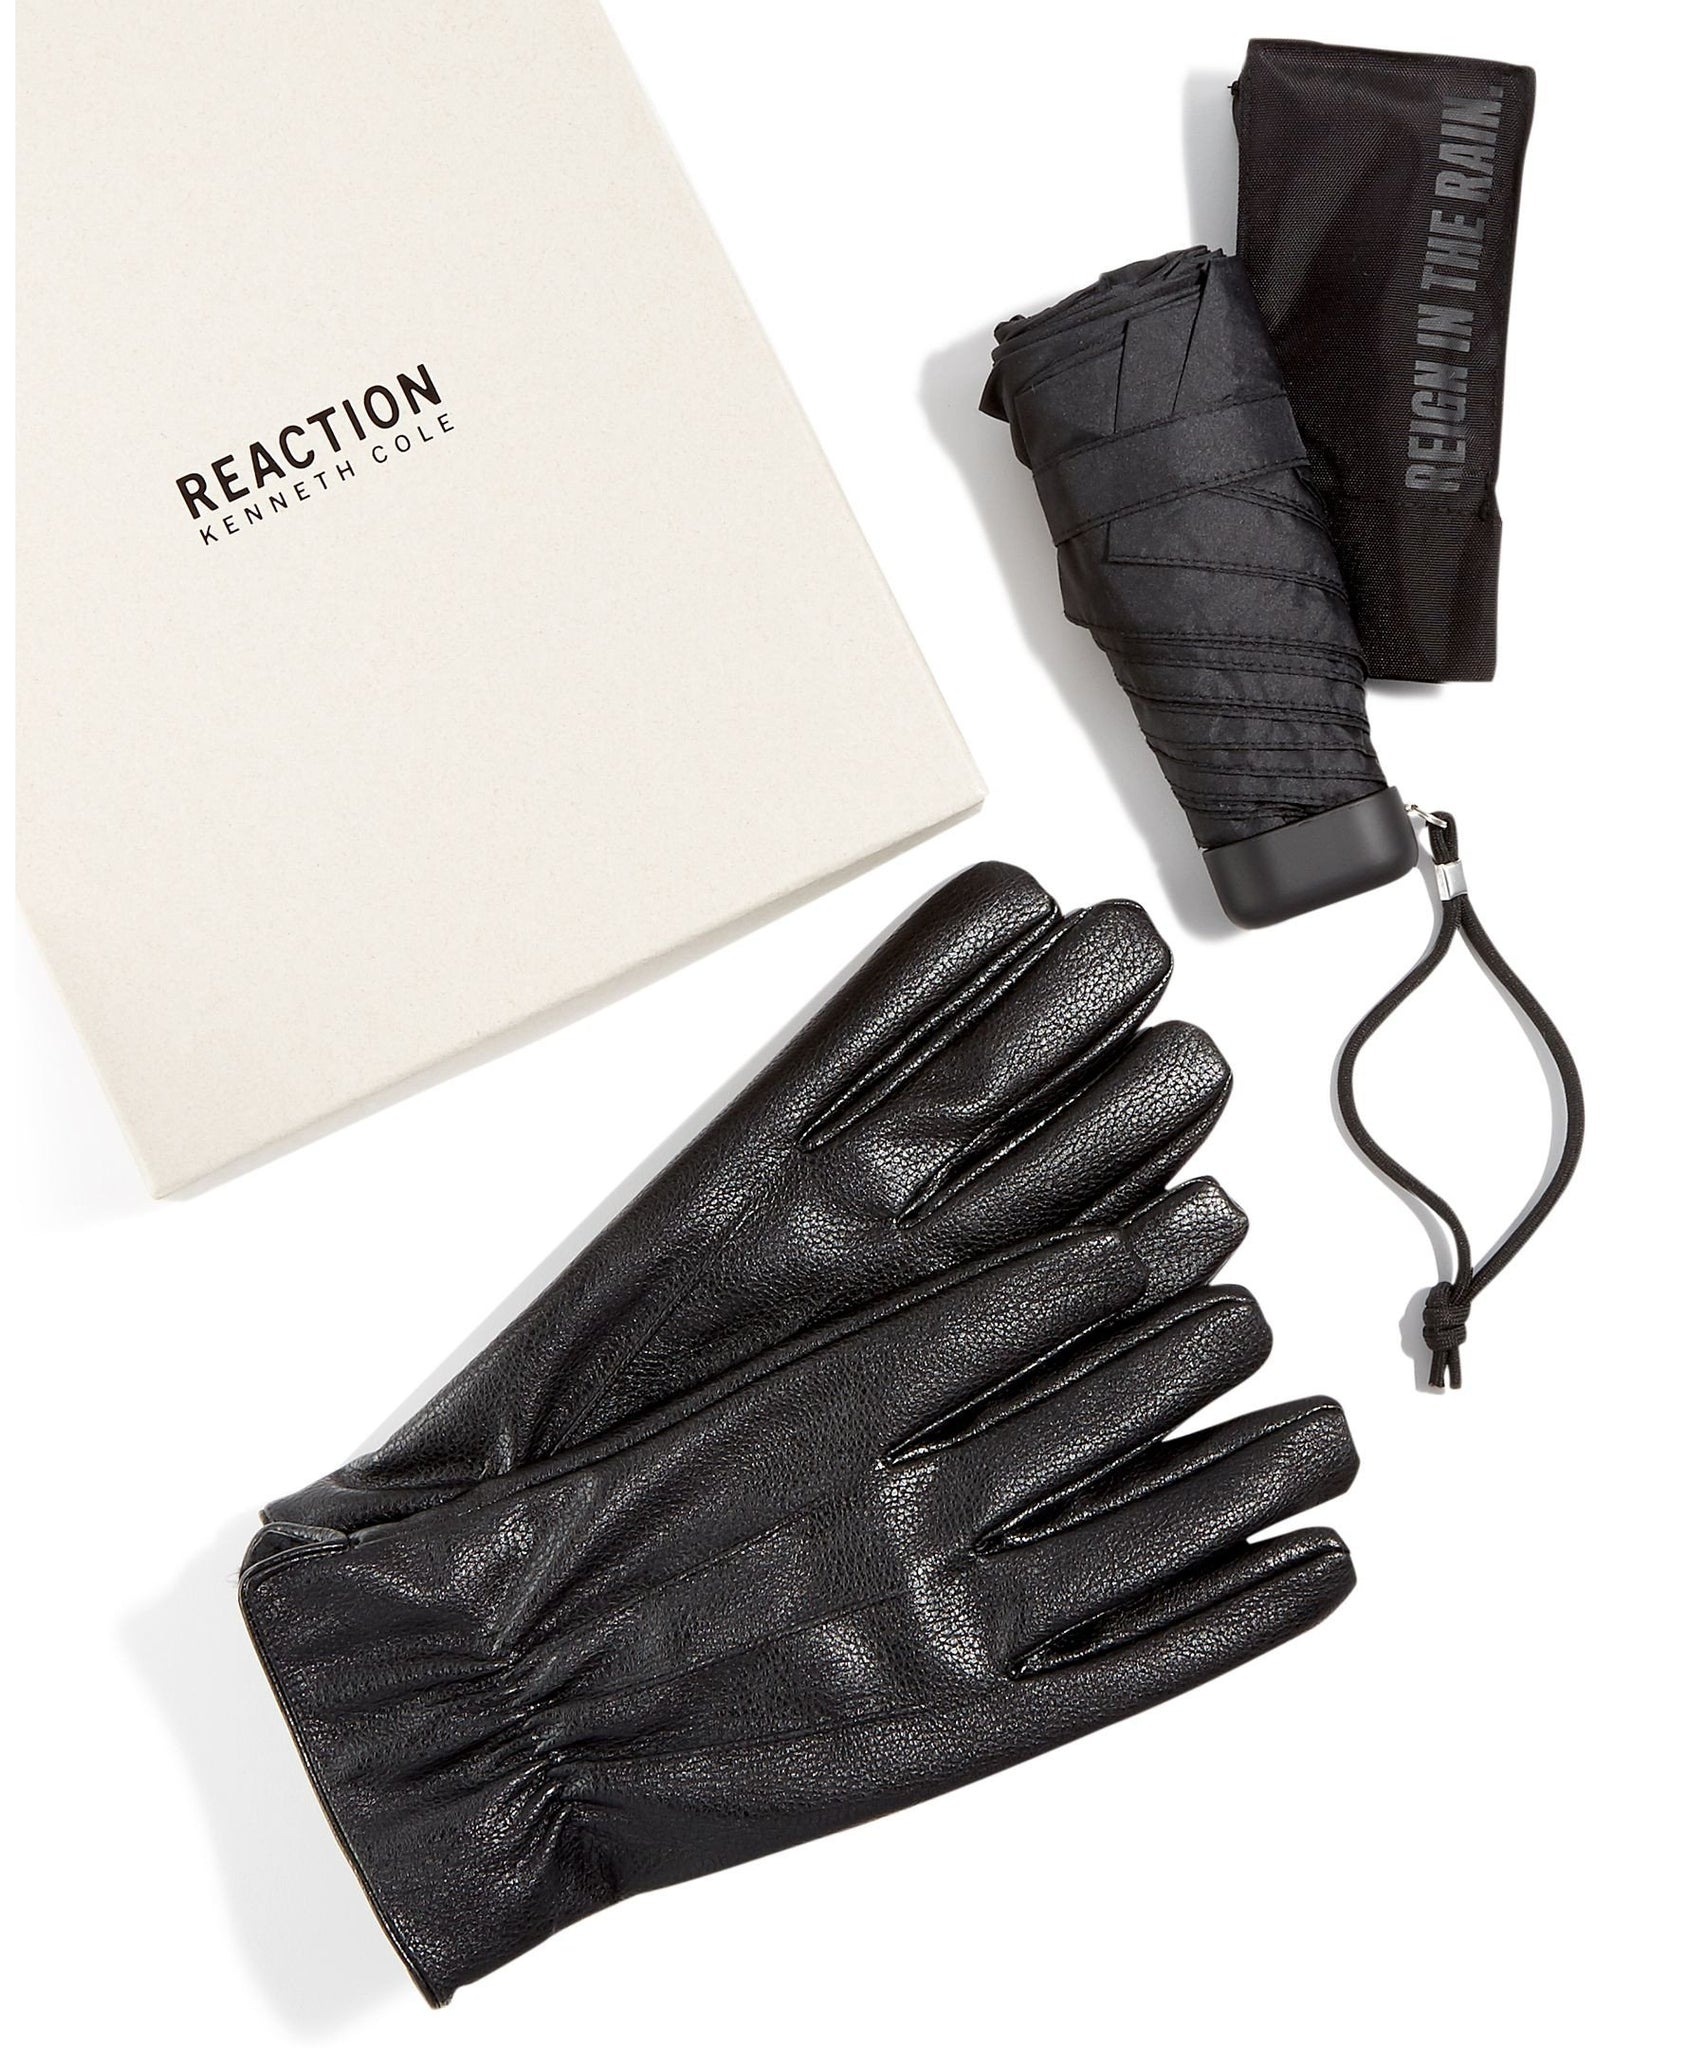 Kenneth Cole Reaction Leather Gloves & Umbrella Gift Set Large